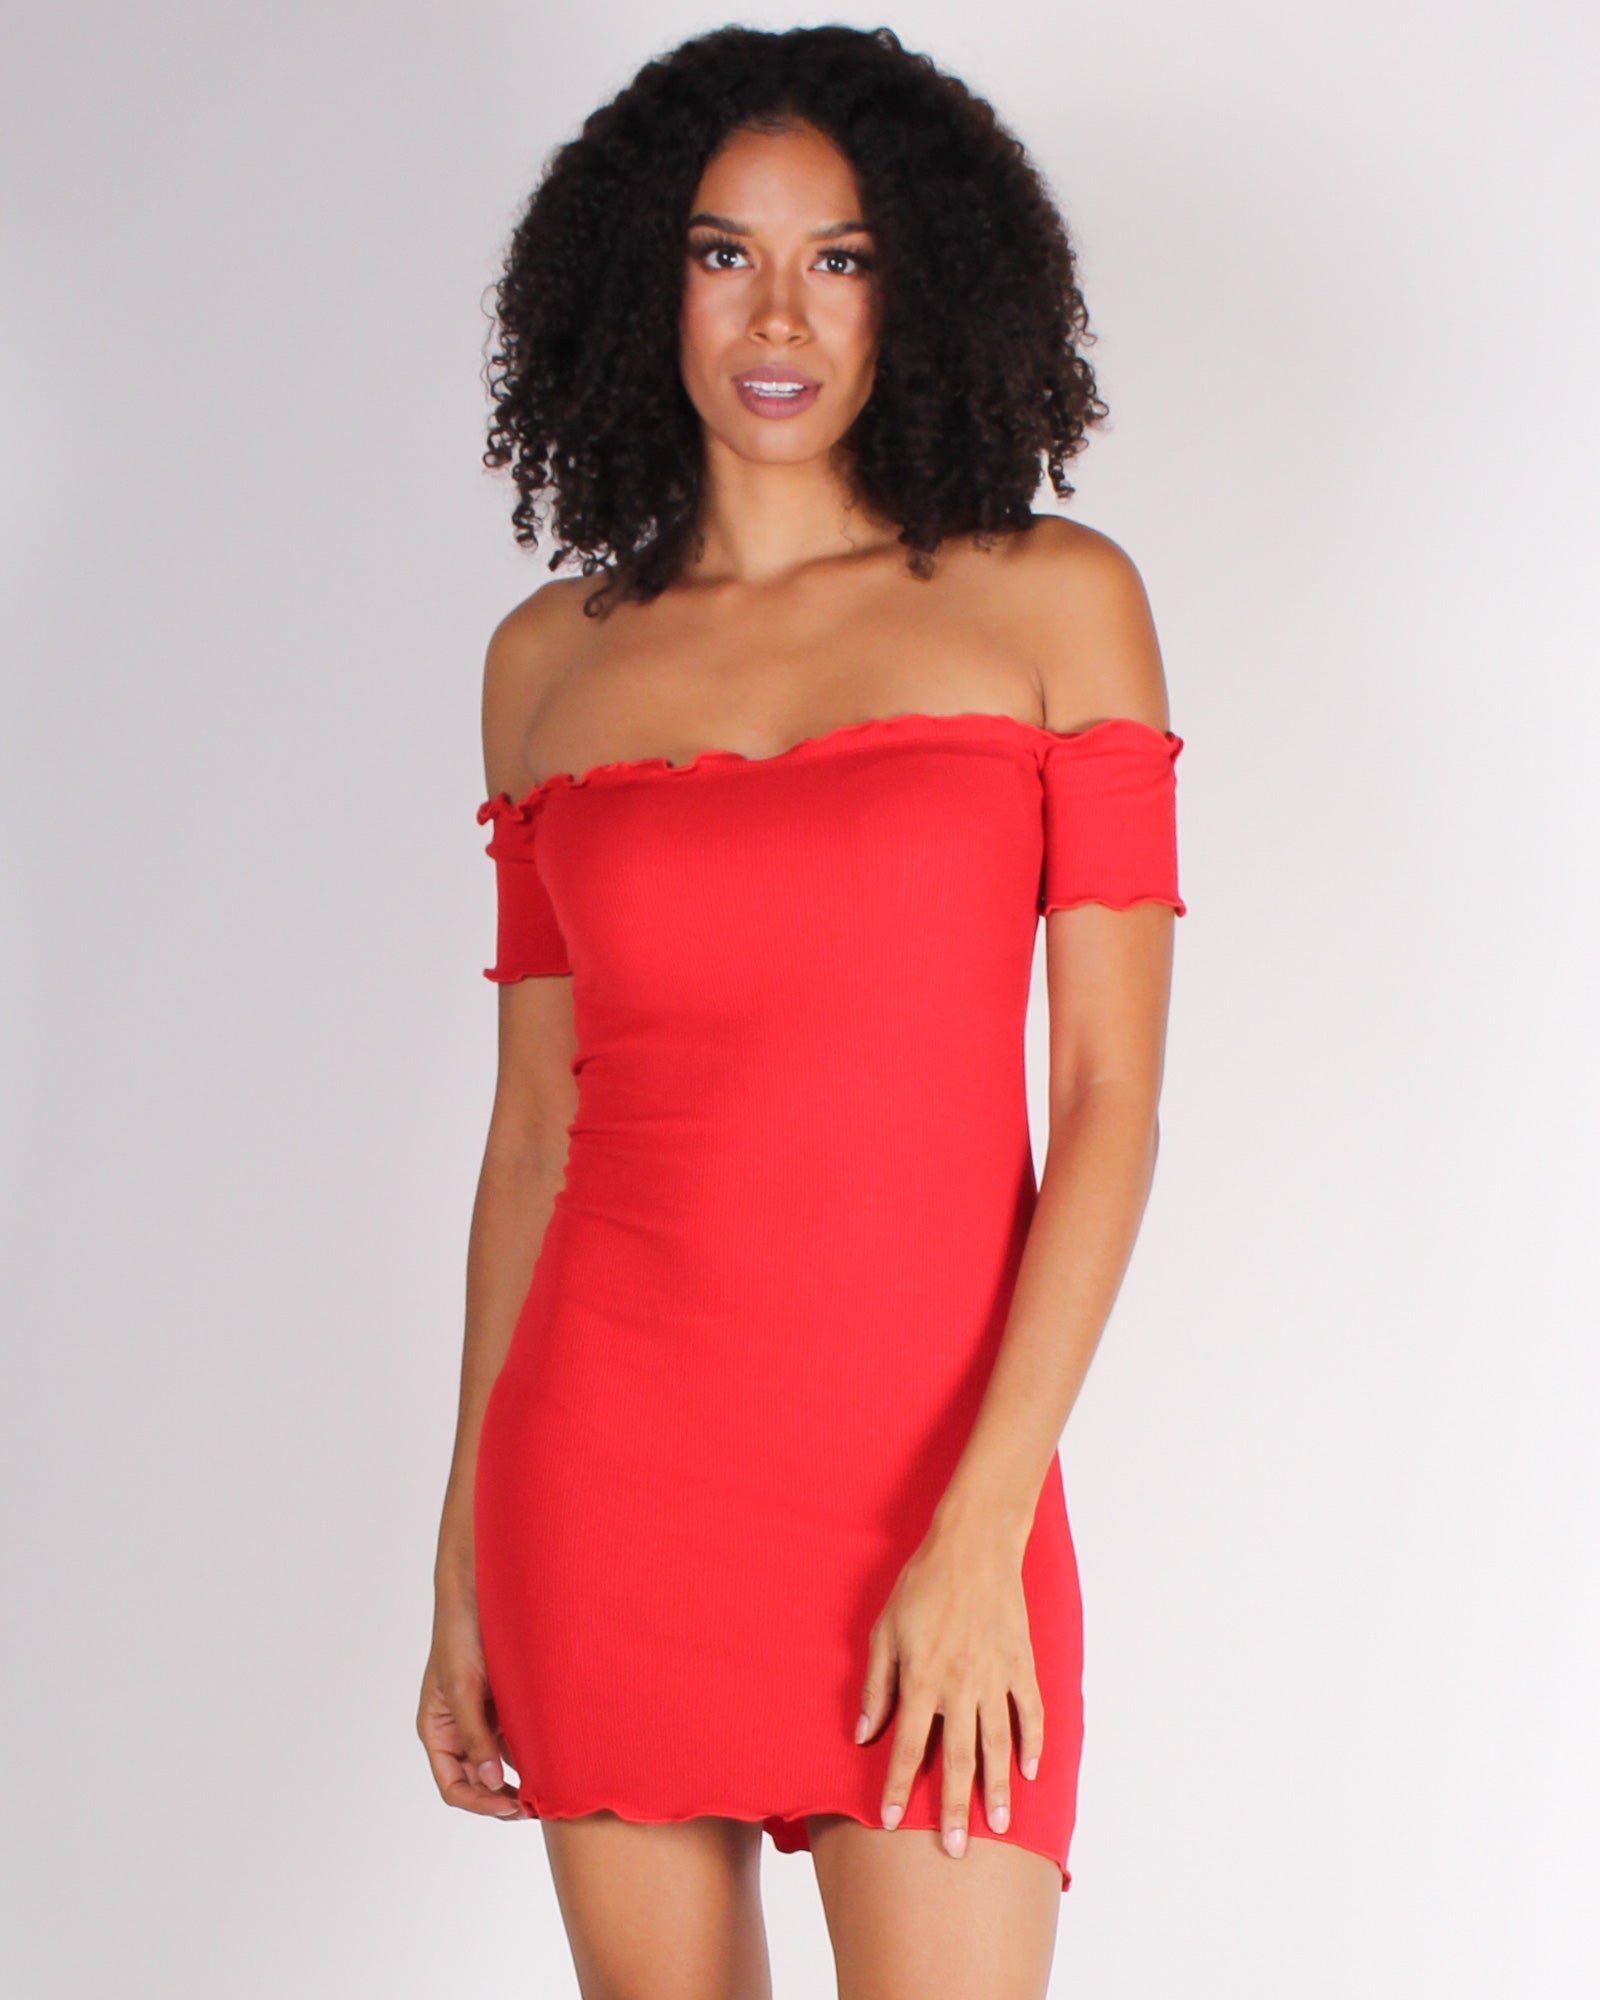 Fashion Q Shop QPretty and Witty and Bright Off the Shoulder Bodycon Dress (Red) RD31781